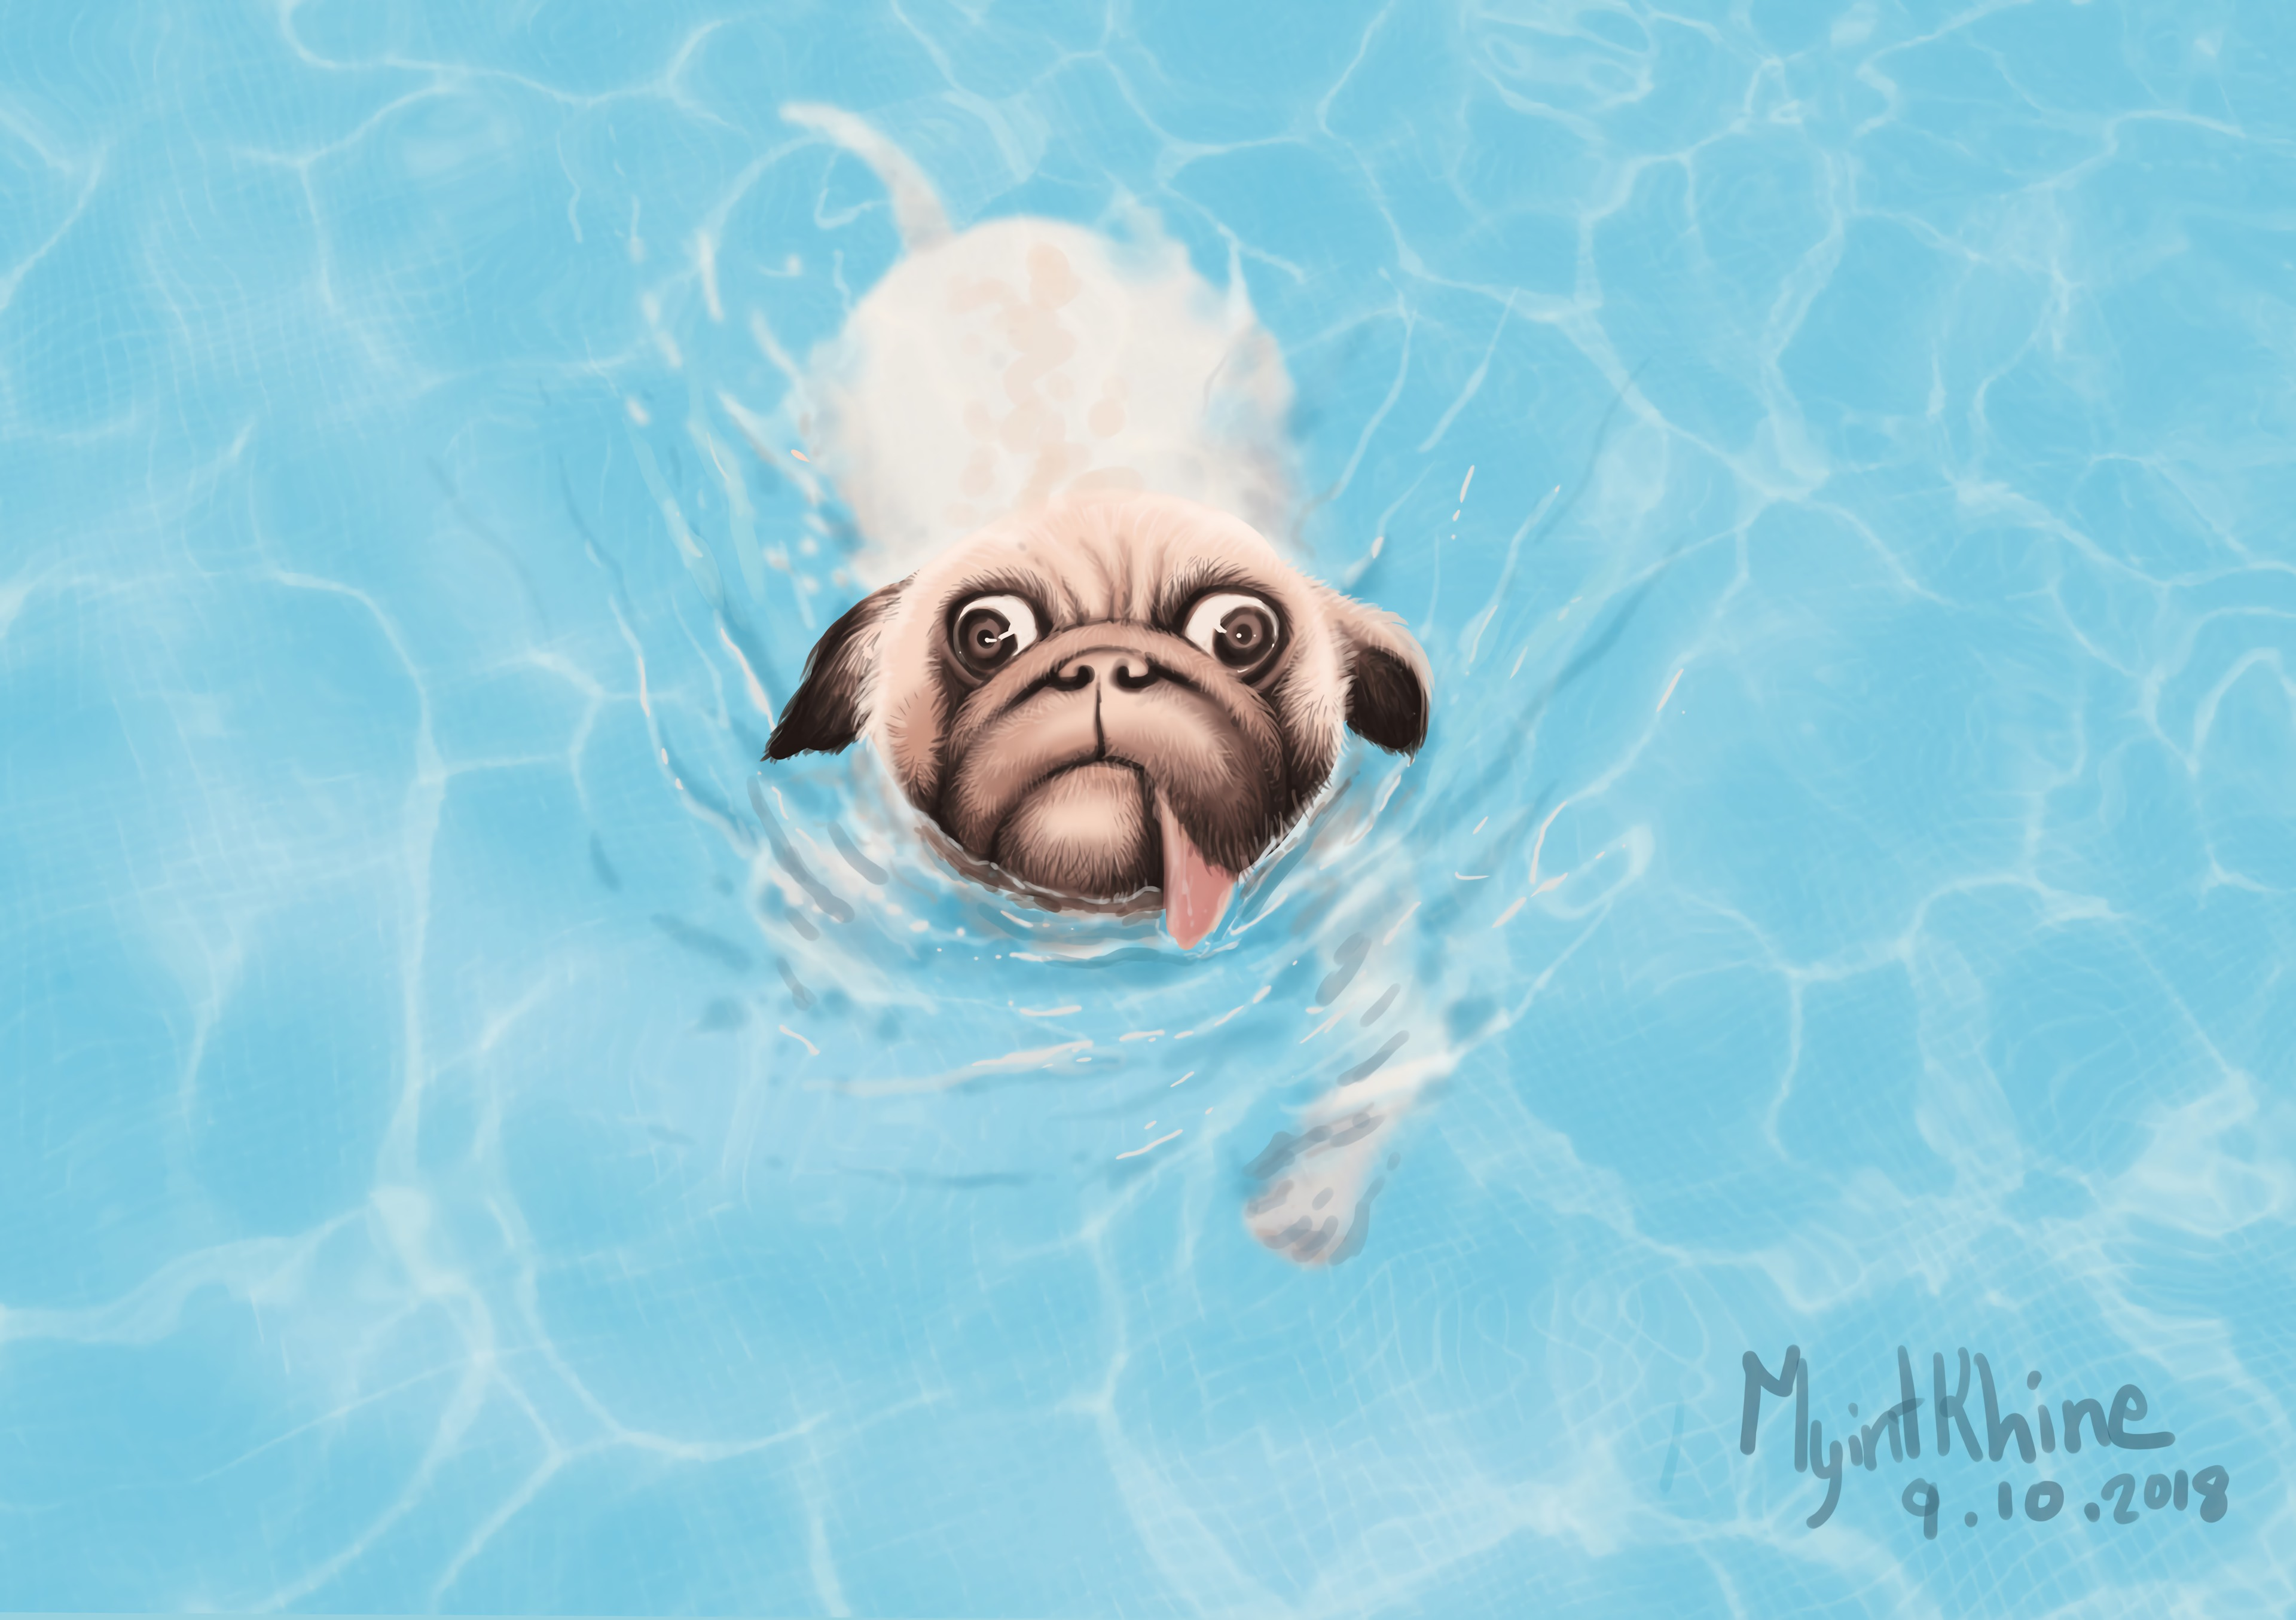 122295 download wallpaper Bulldog, Dog, Protruding Tongue, Tongue Stuck Out, Water, Art screensavers and pictures for free